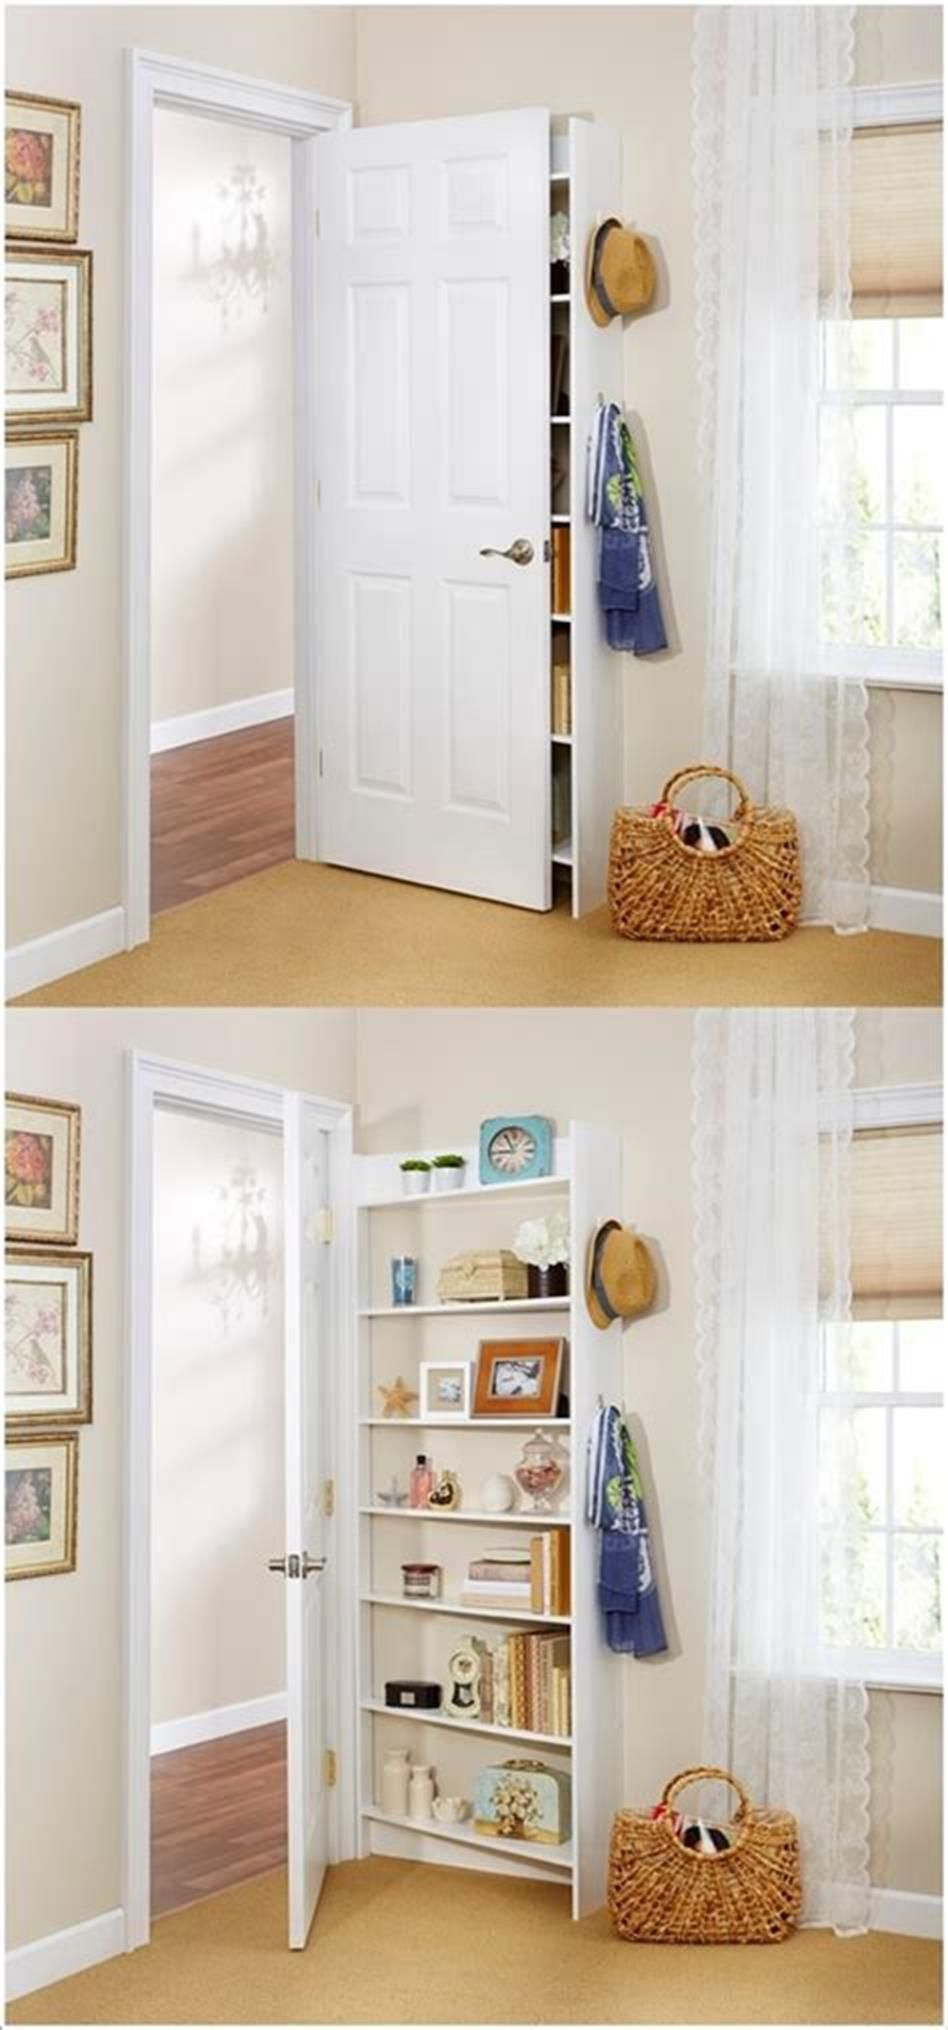 Best 45 Storage Ideas For Small Bedrooms On A Budget Comedecor Small Bedroom Storage Small Bedroom Furniture Small Space Bedroom